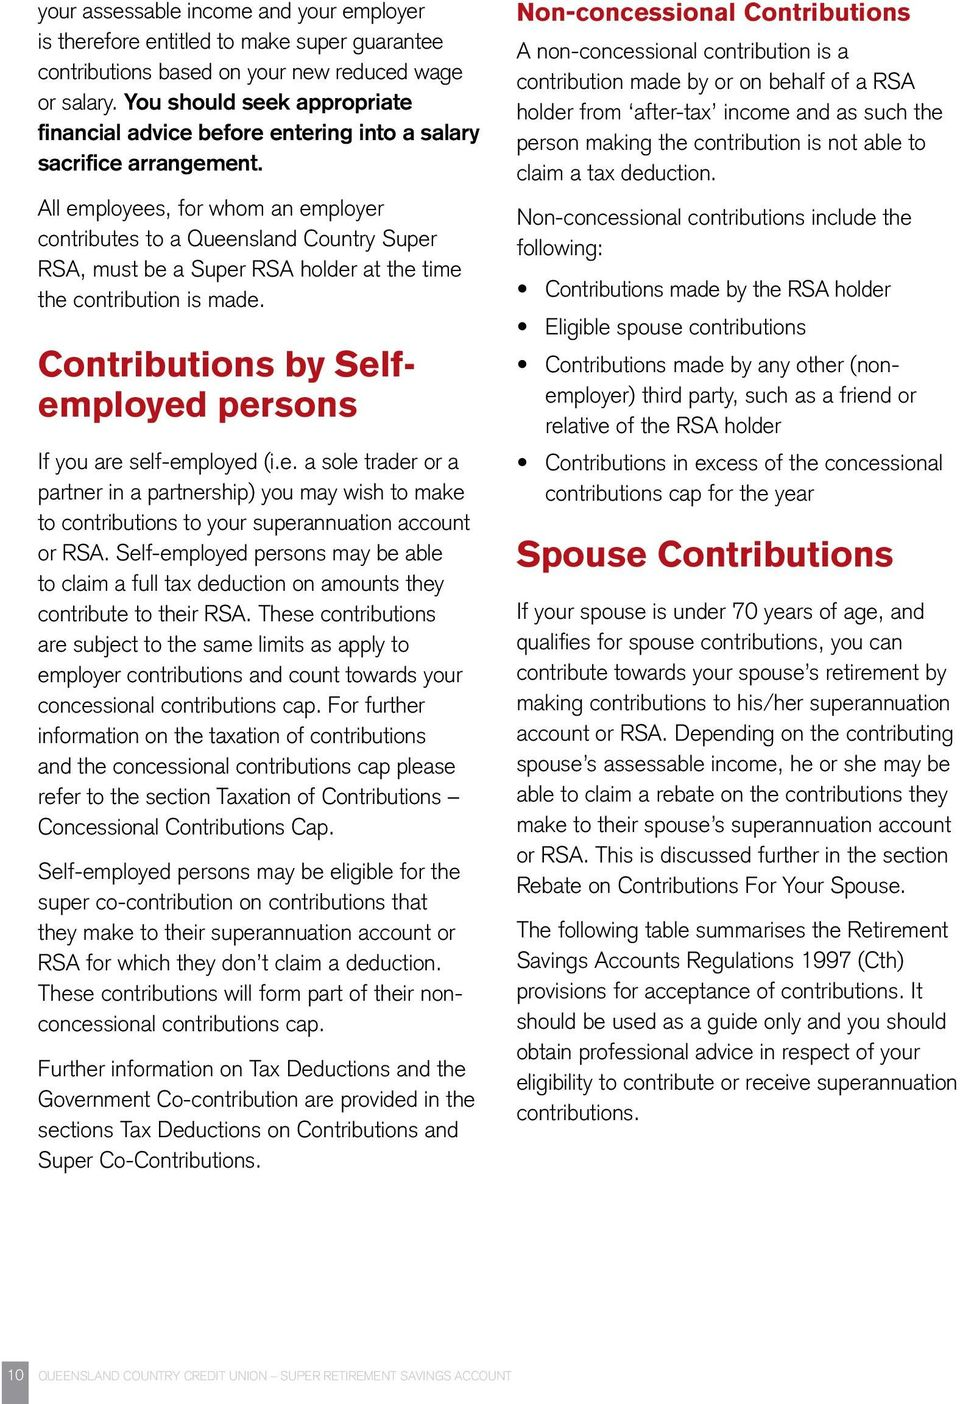 All employees, for whom an employer contributes to a Queensland Country Super RSA, must be a Super RSA holder at the time the contribution is made.